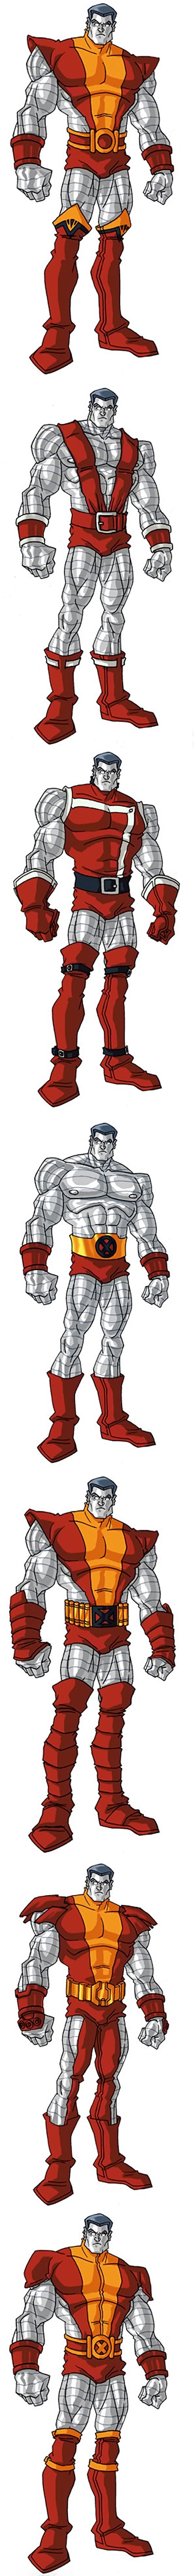 Colossus of the X-Men (Marvel Comics) gallery by RonnieThunderbolts